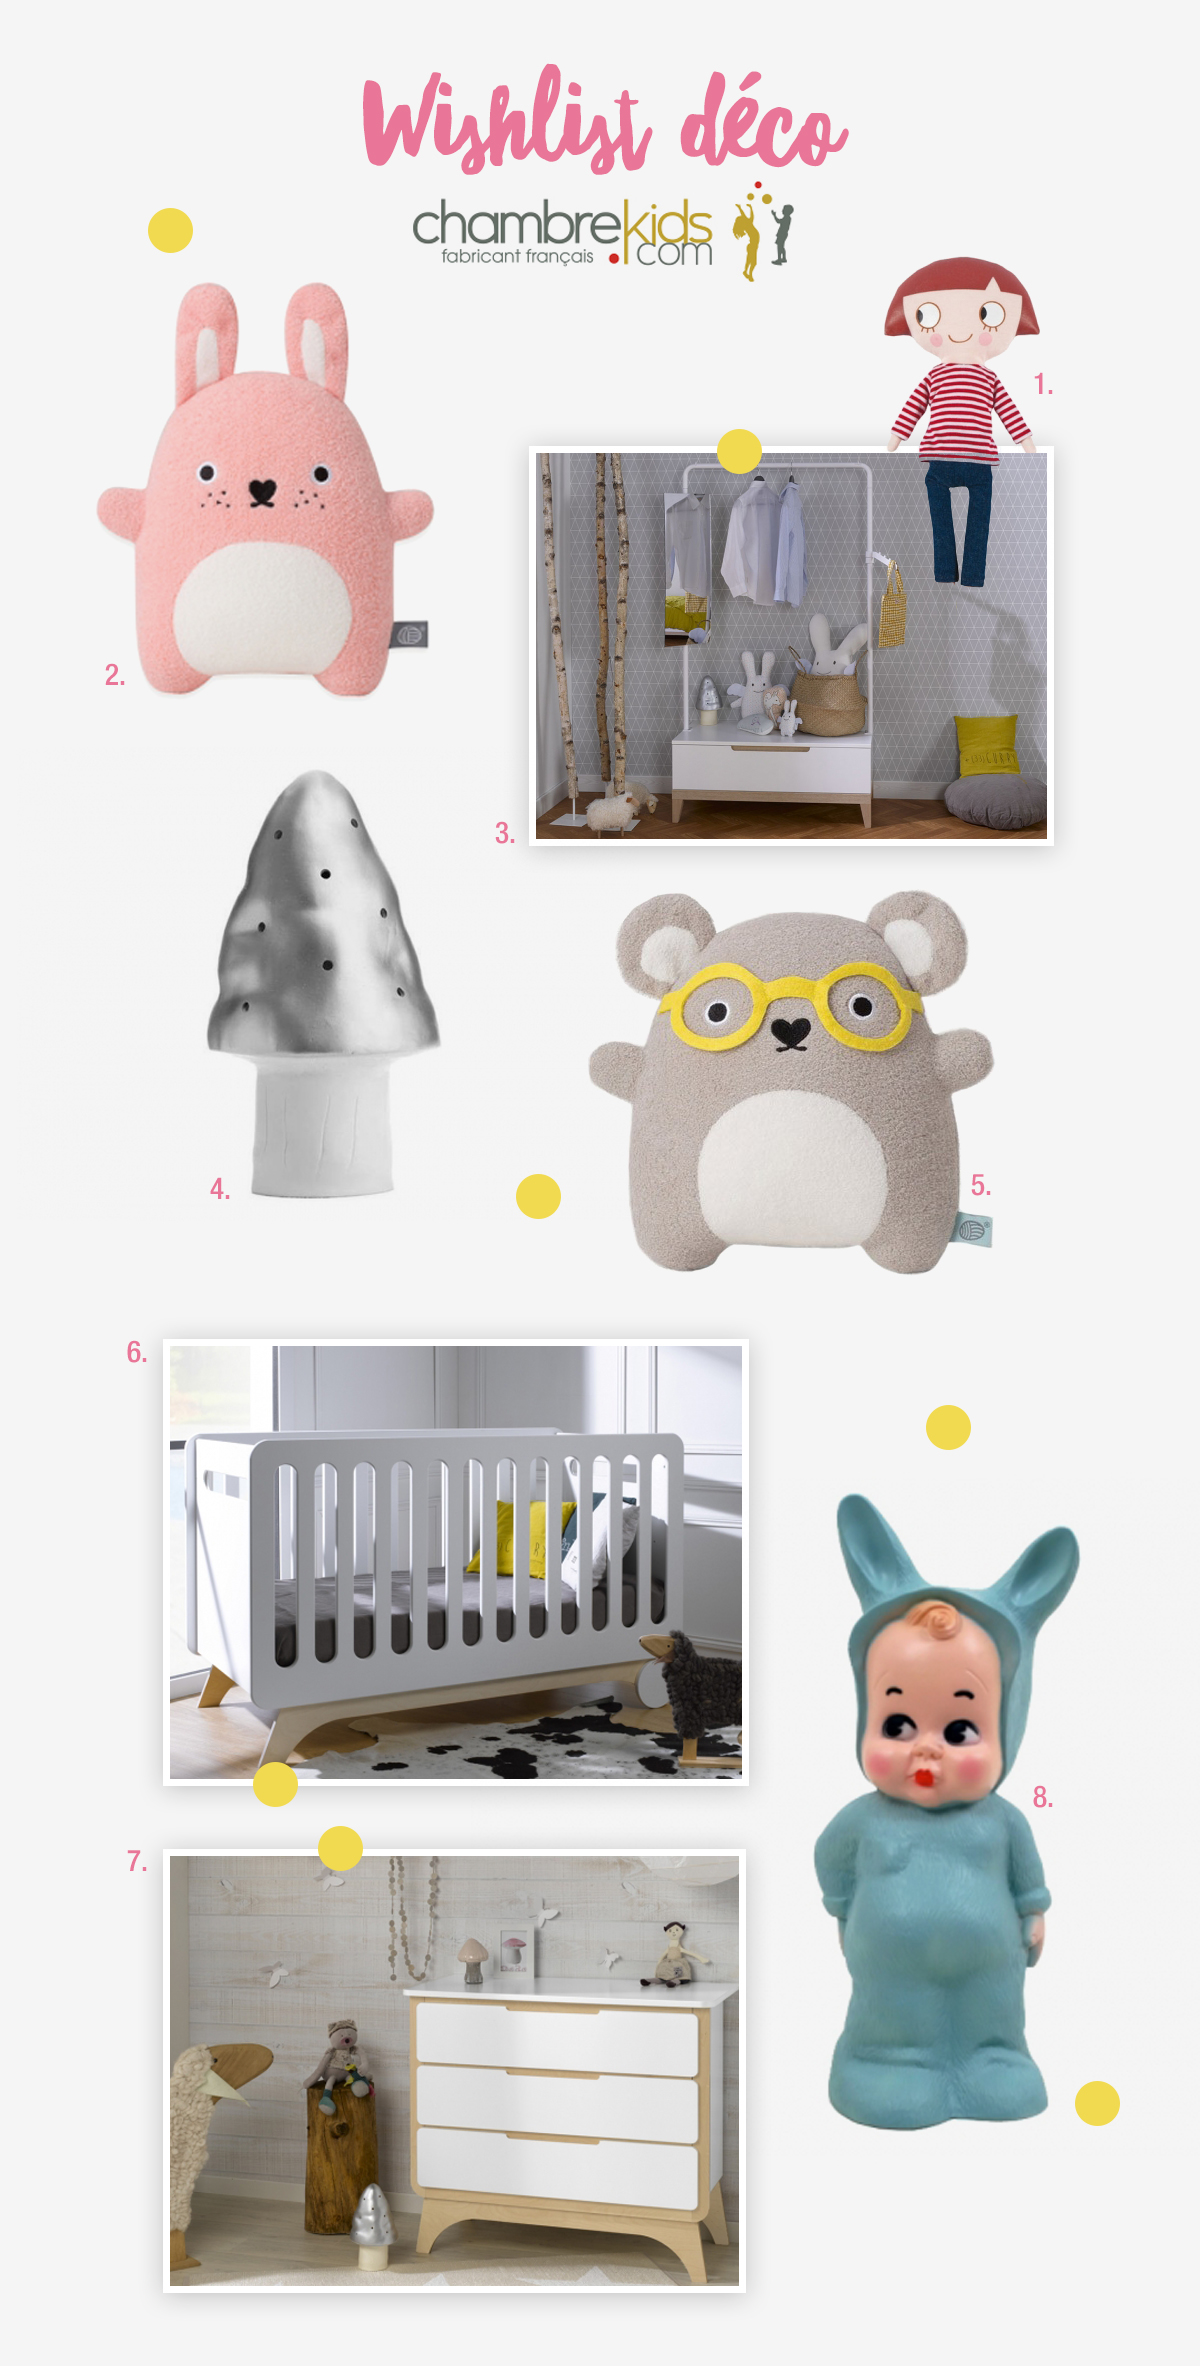 bon plan deco kids les ventes priv es chambrekids poulette magique. Black Bedroom Furniture Sets. Home Design Ideas